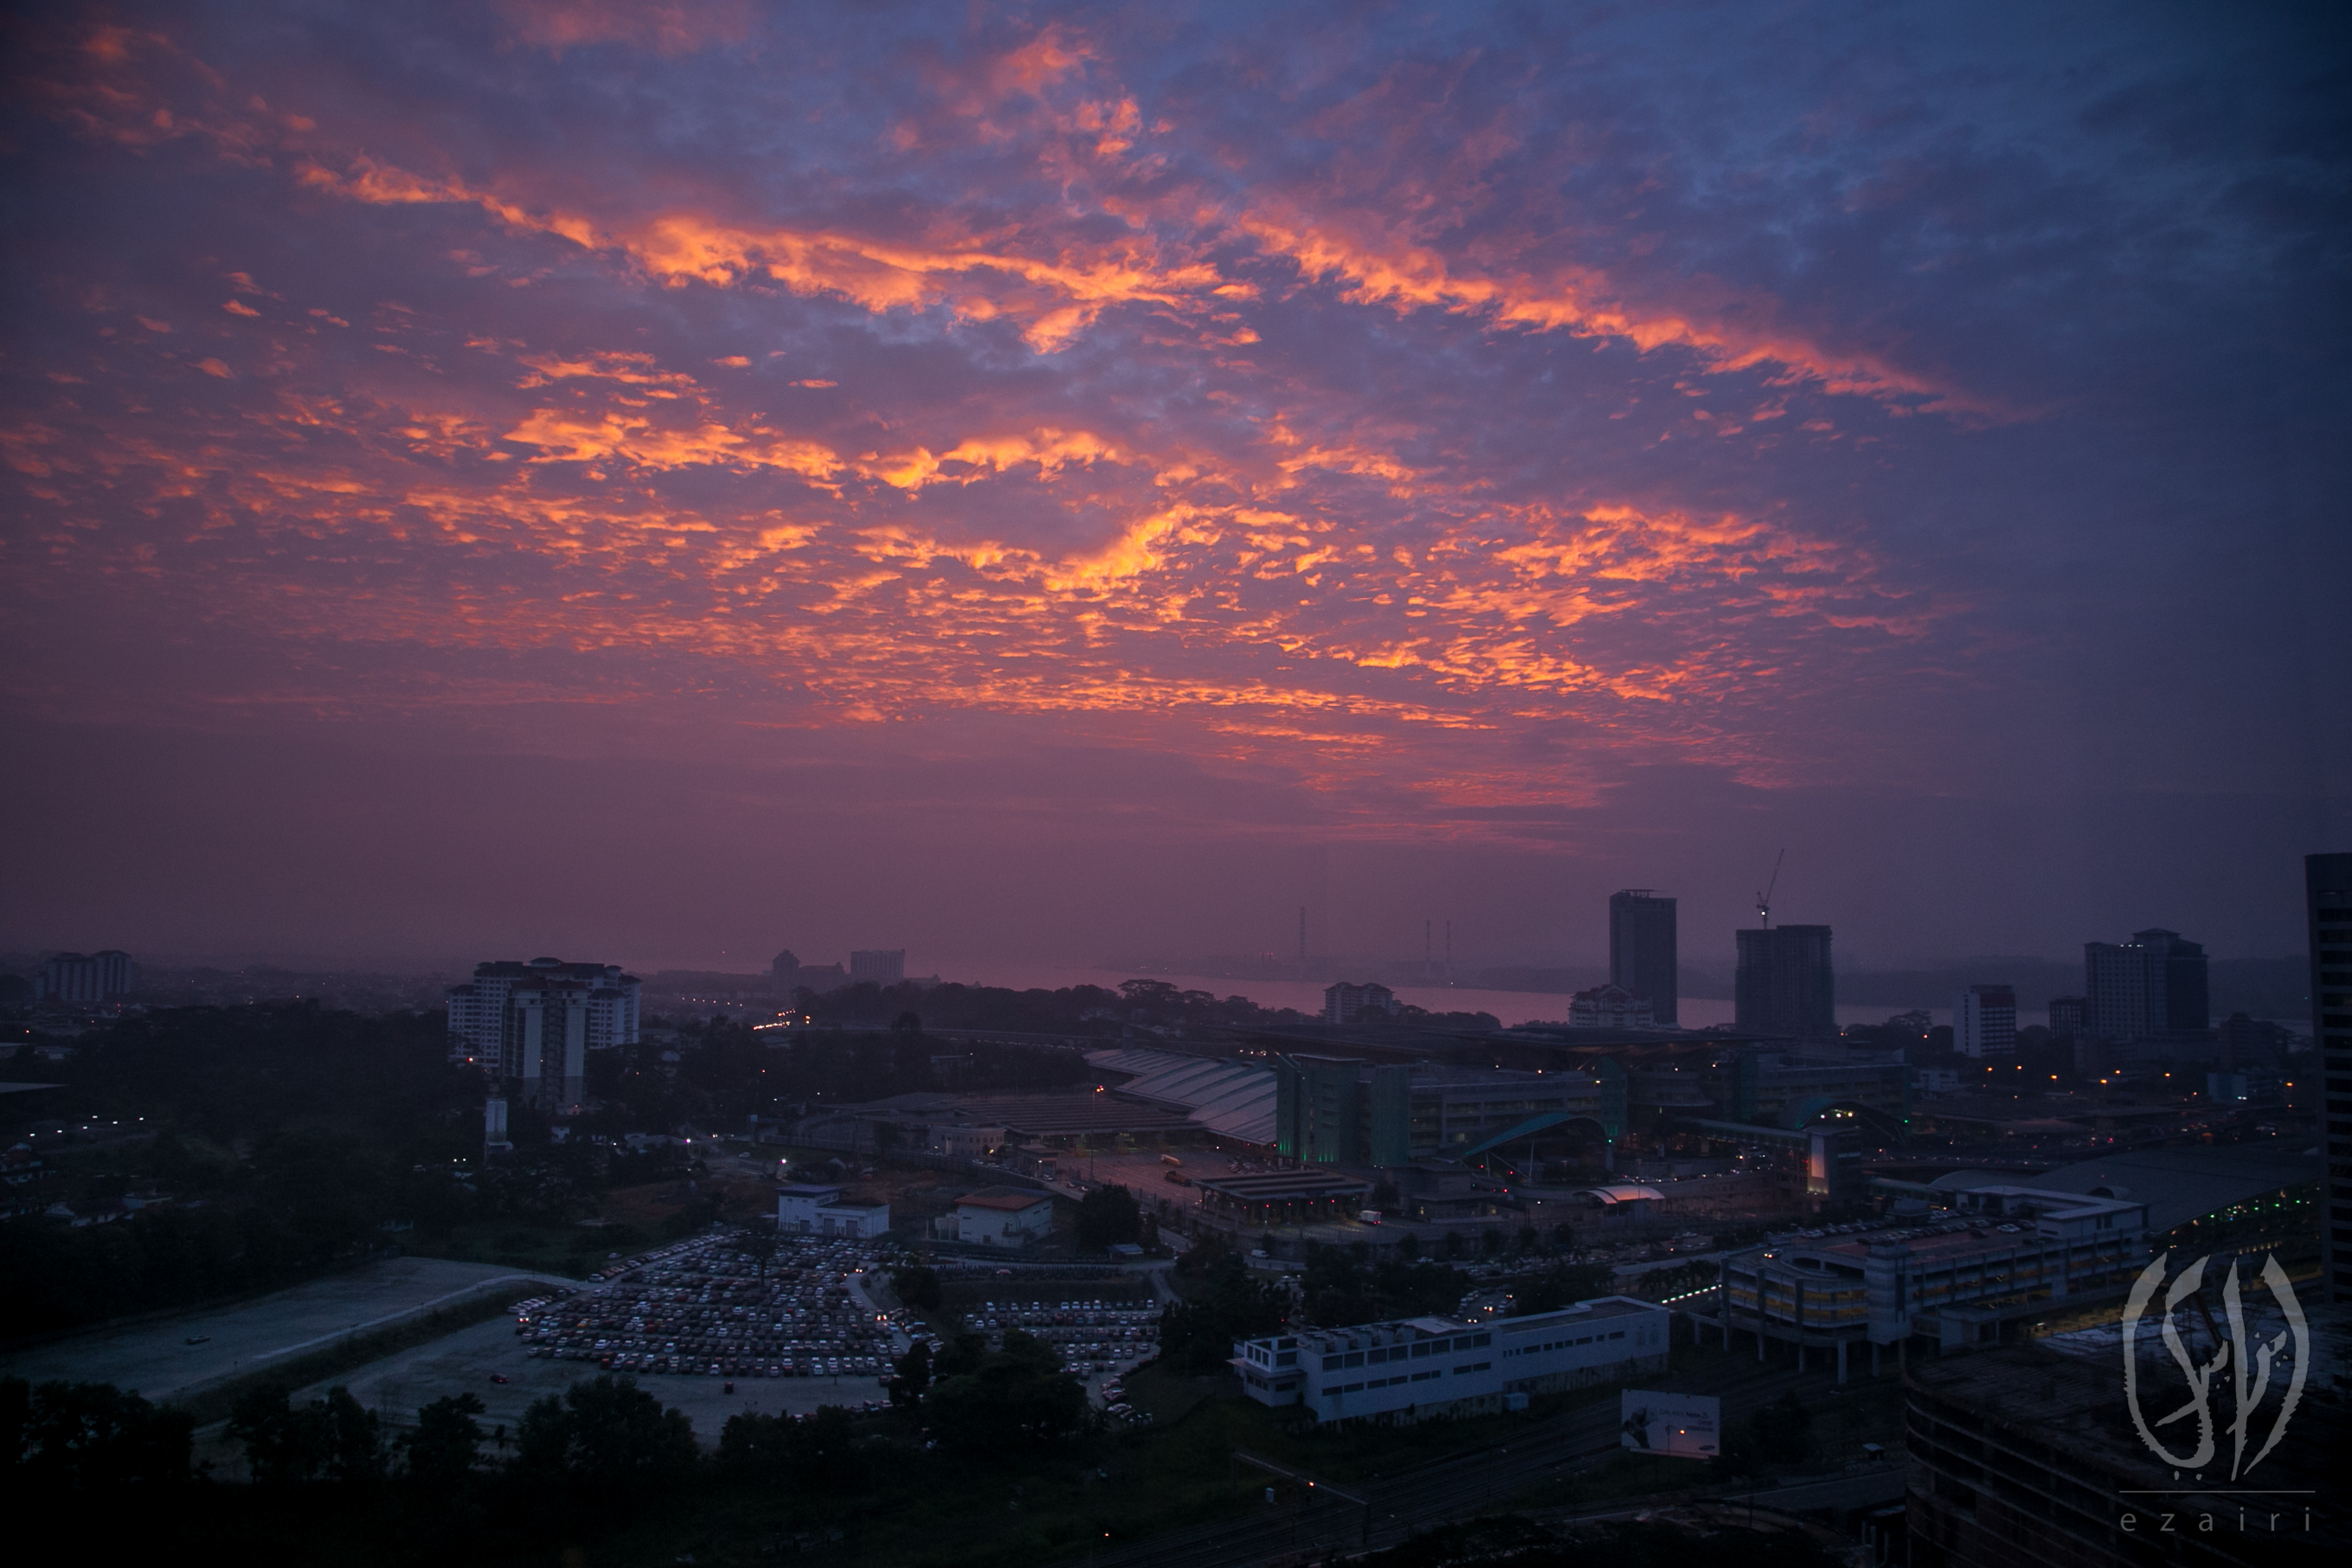 A Morning In Johor Bahru Full HD Wallpaper And Background Image